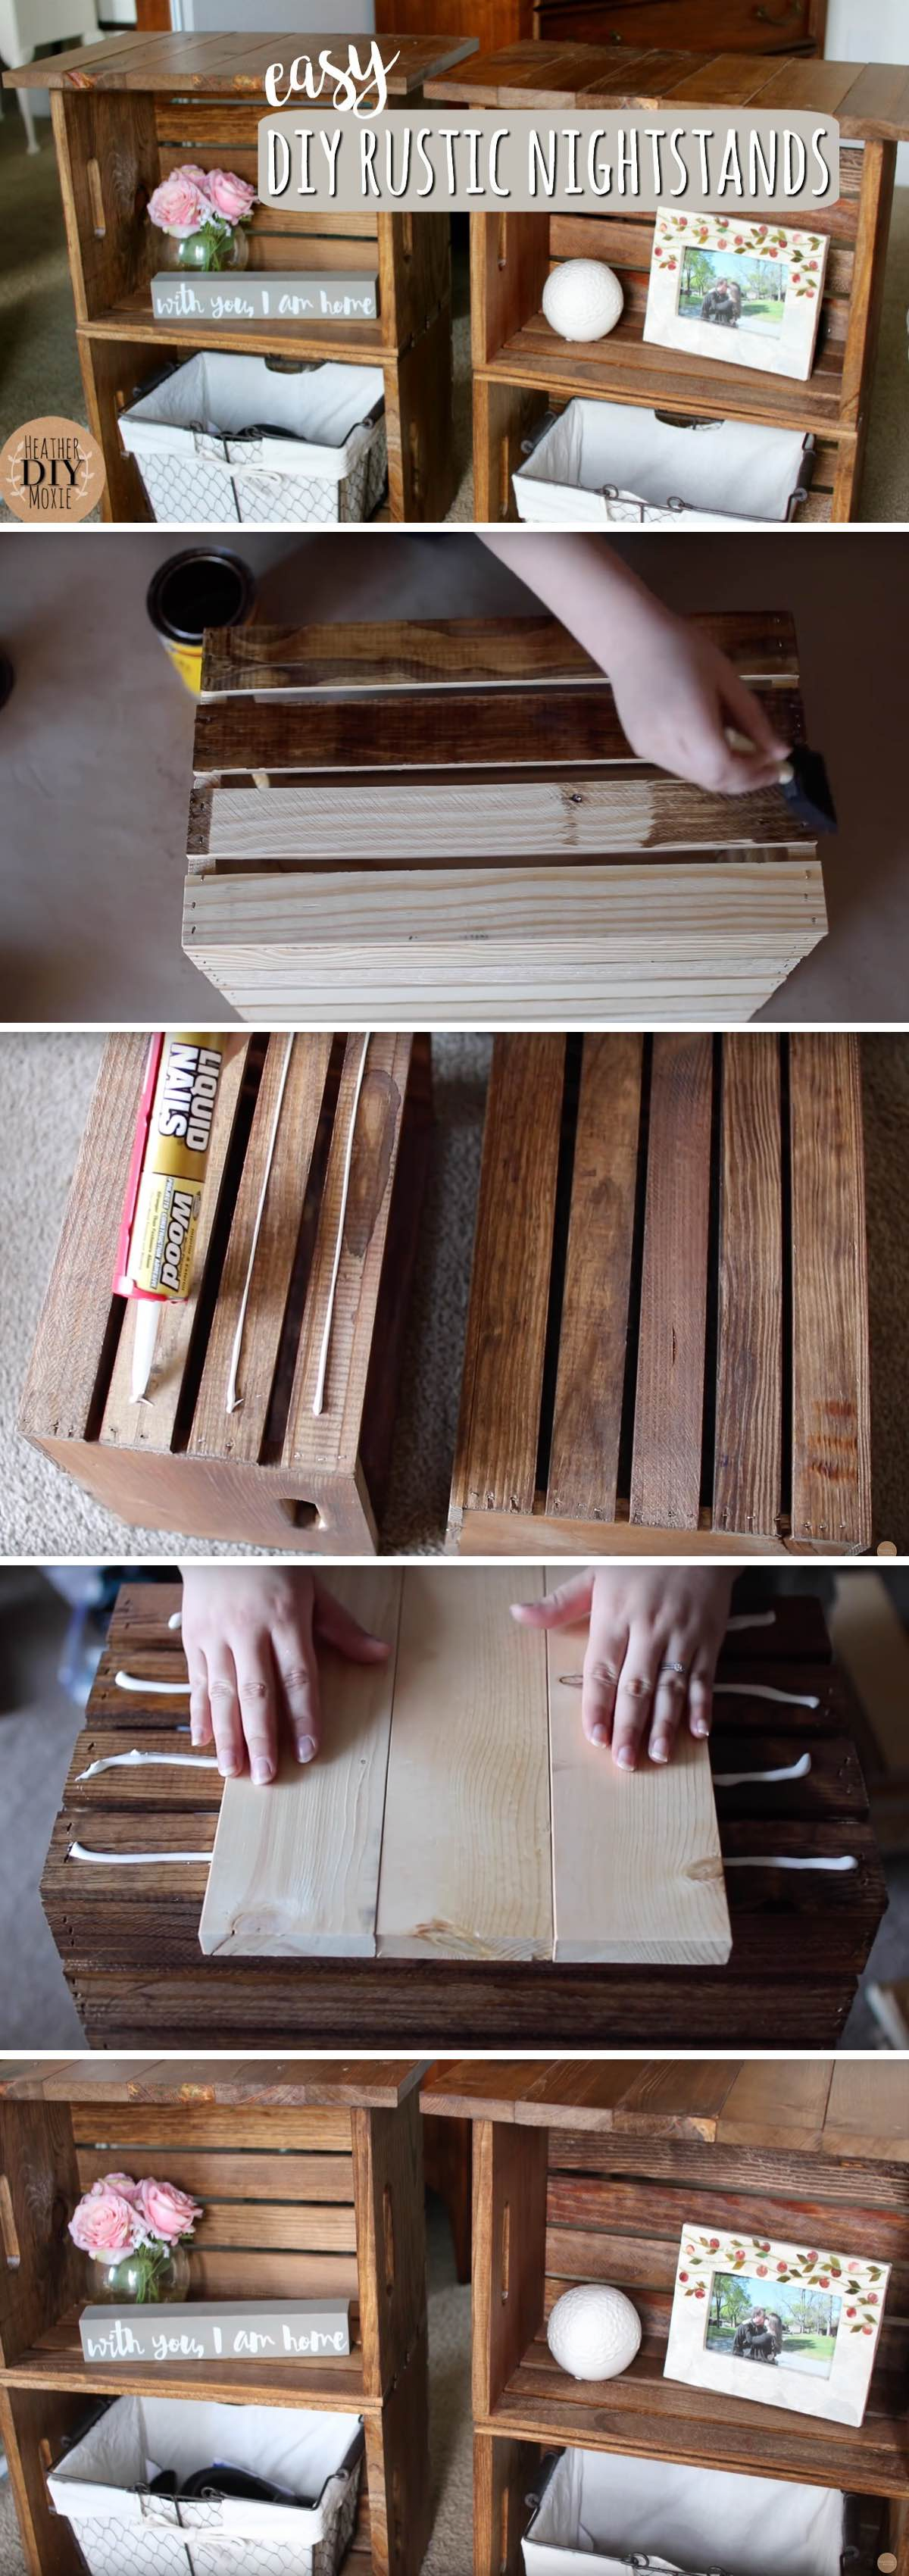 How To Build A Marvellous Diy Rustic Nightstands